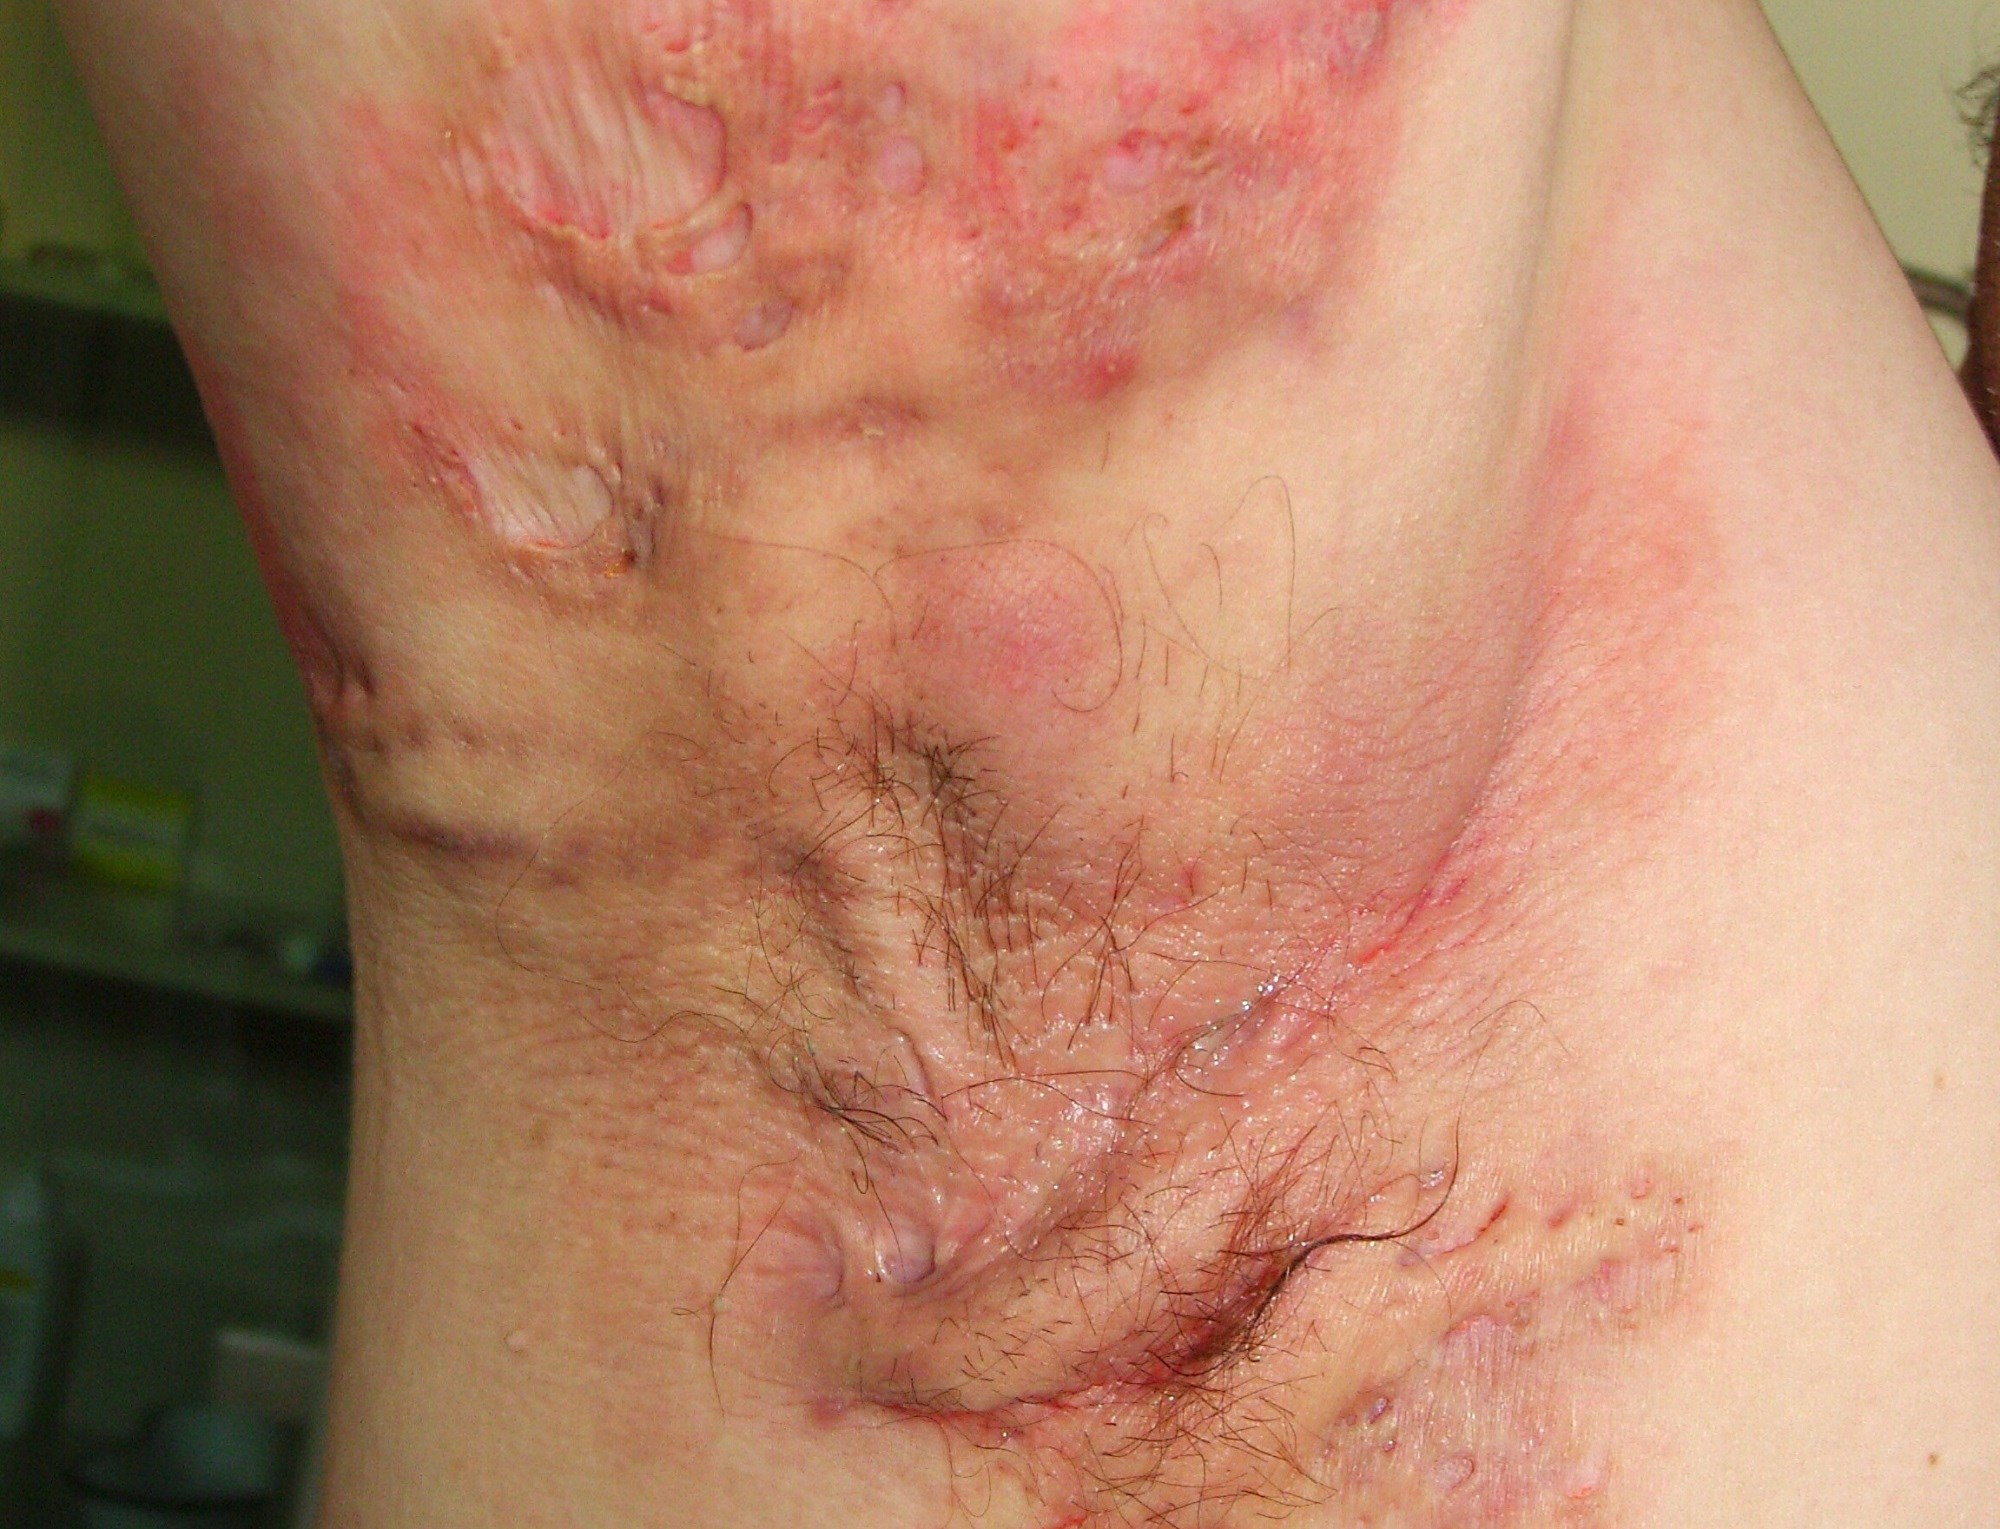 Lower-Dose Spironolactone Effective for Hidradenitis Suppurativa With Tolerability Issues